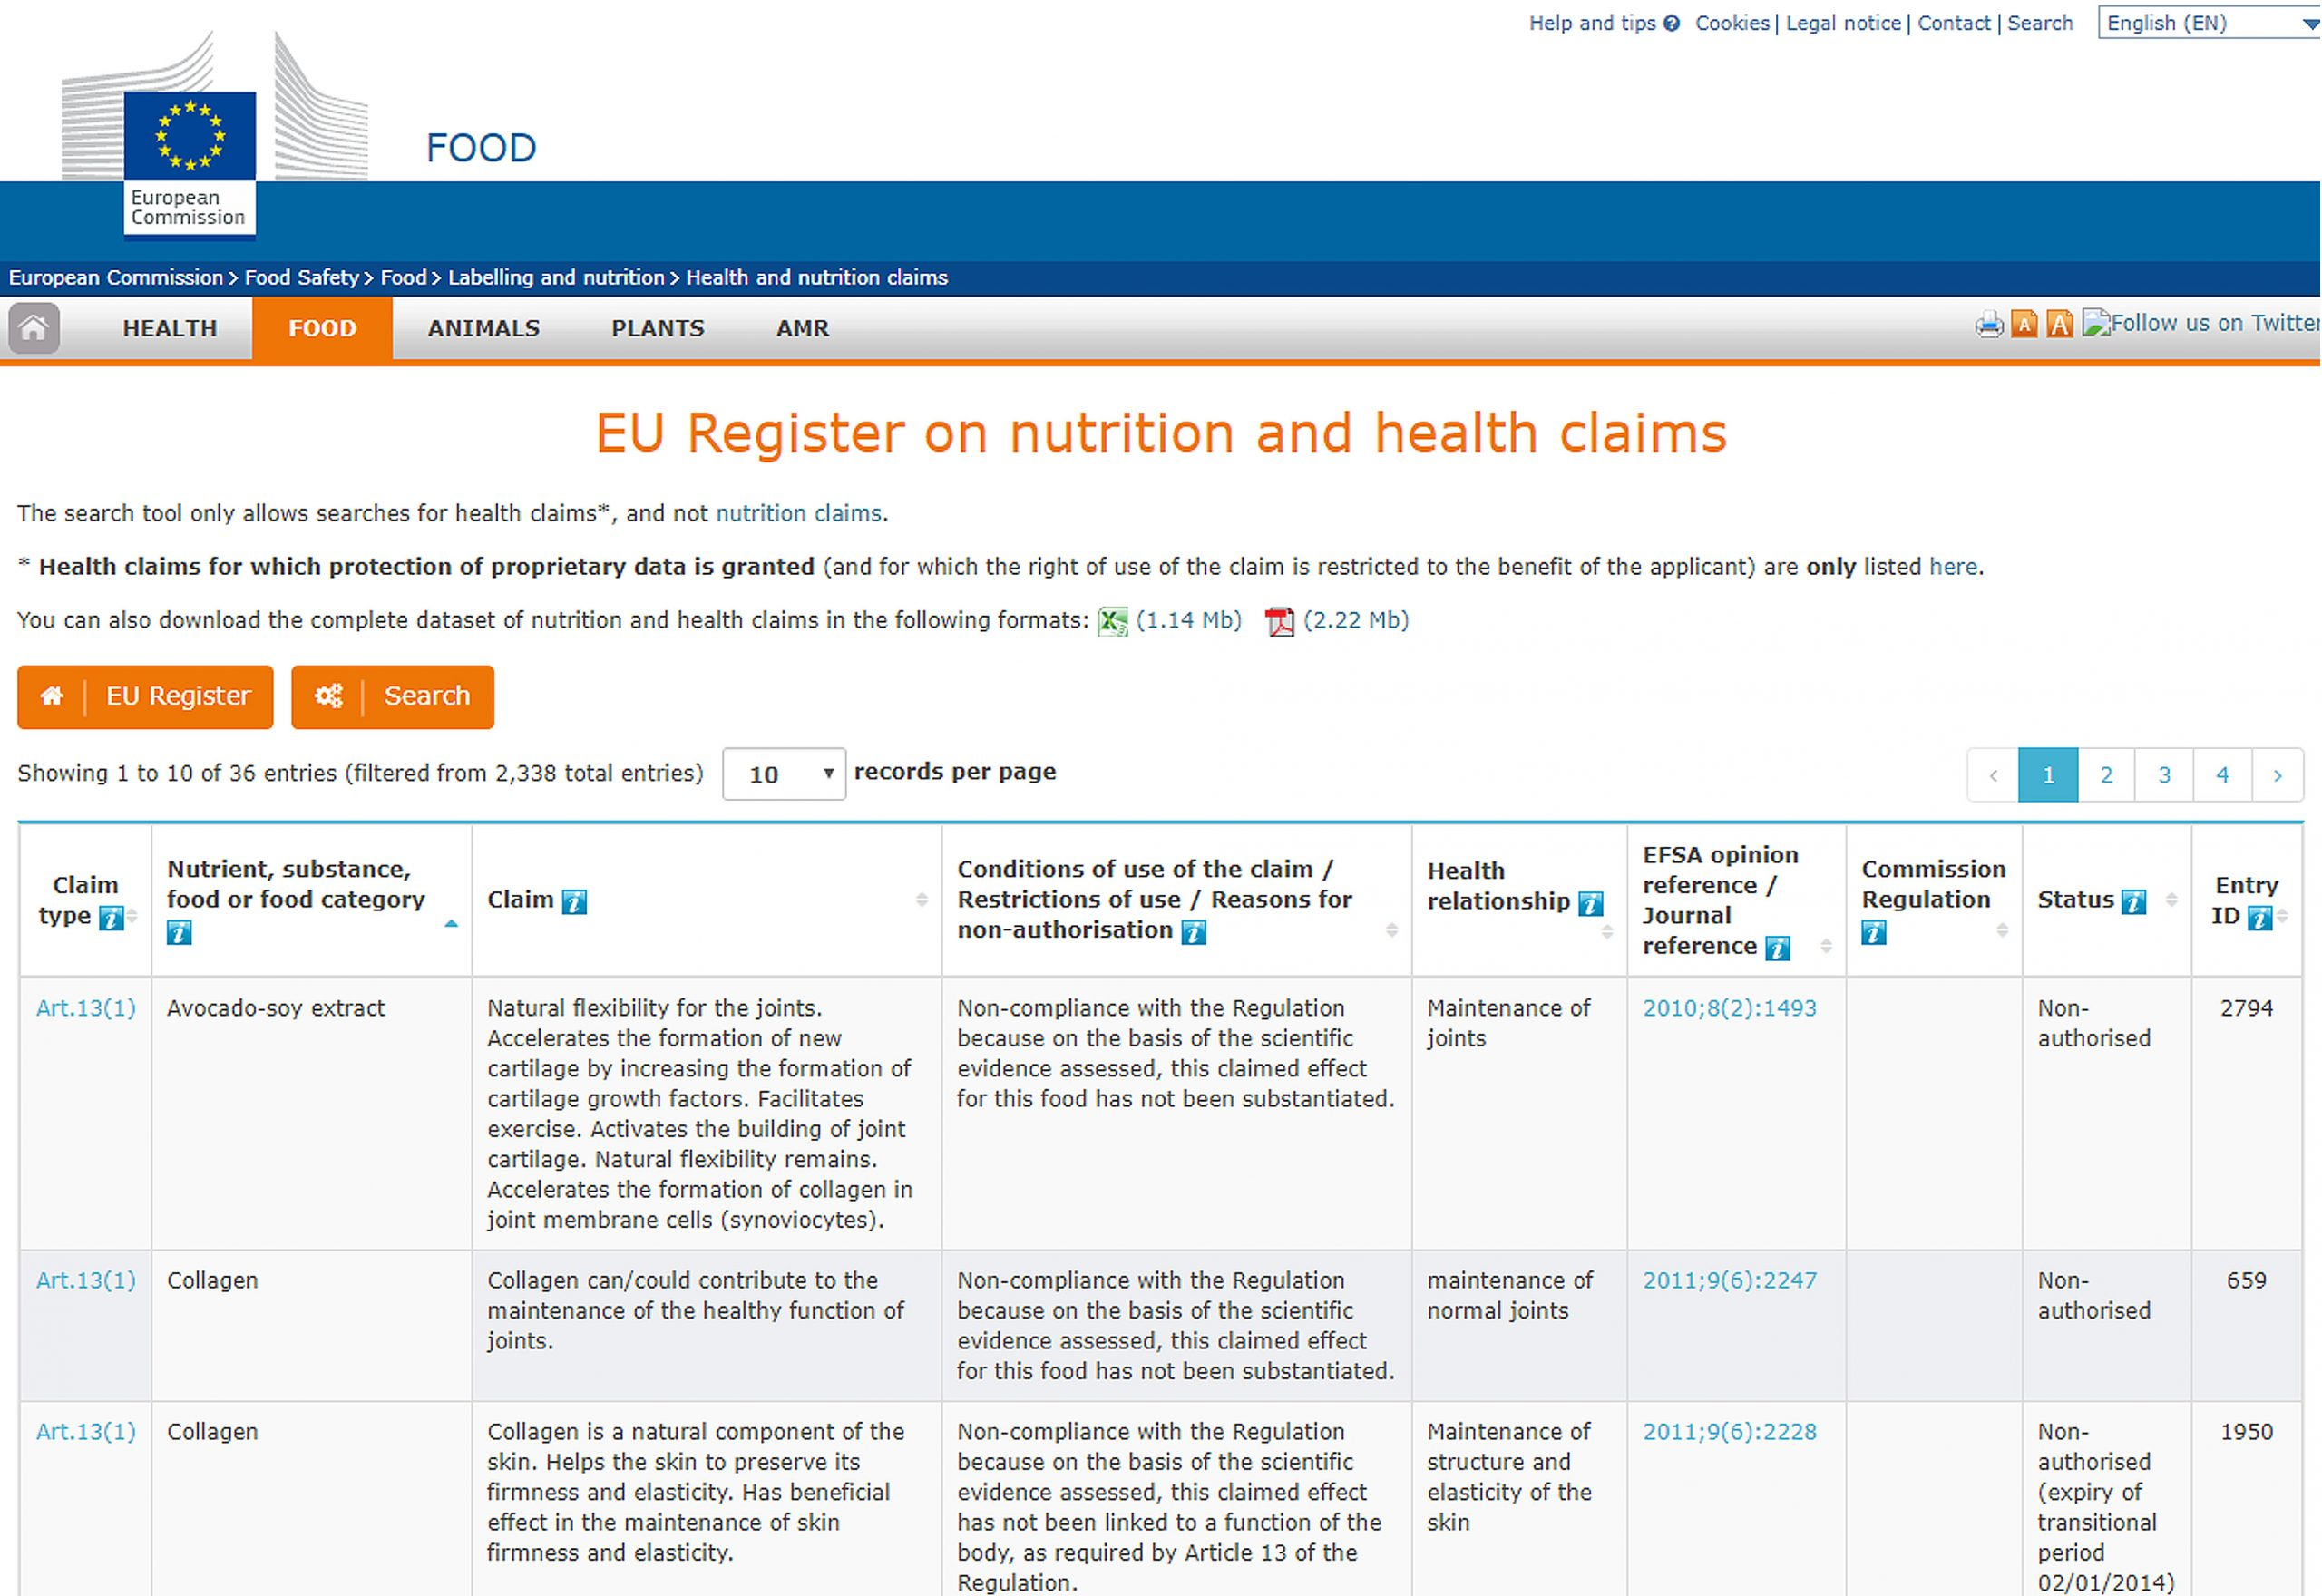 Here's an example list of collagen effects on skin by EU nutrition and health claims database.